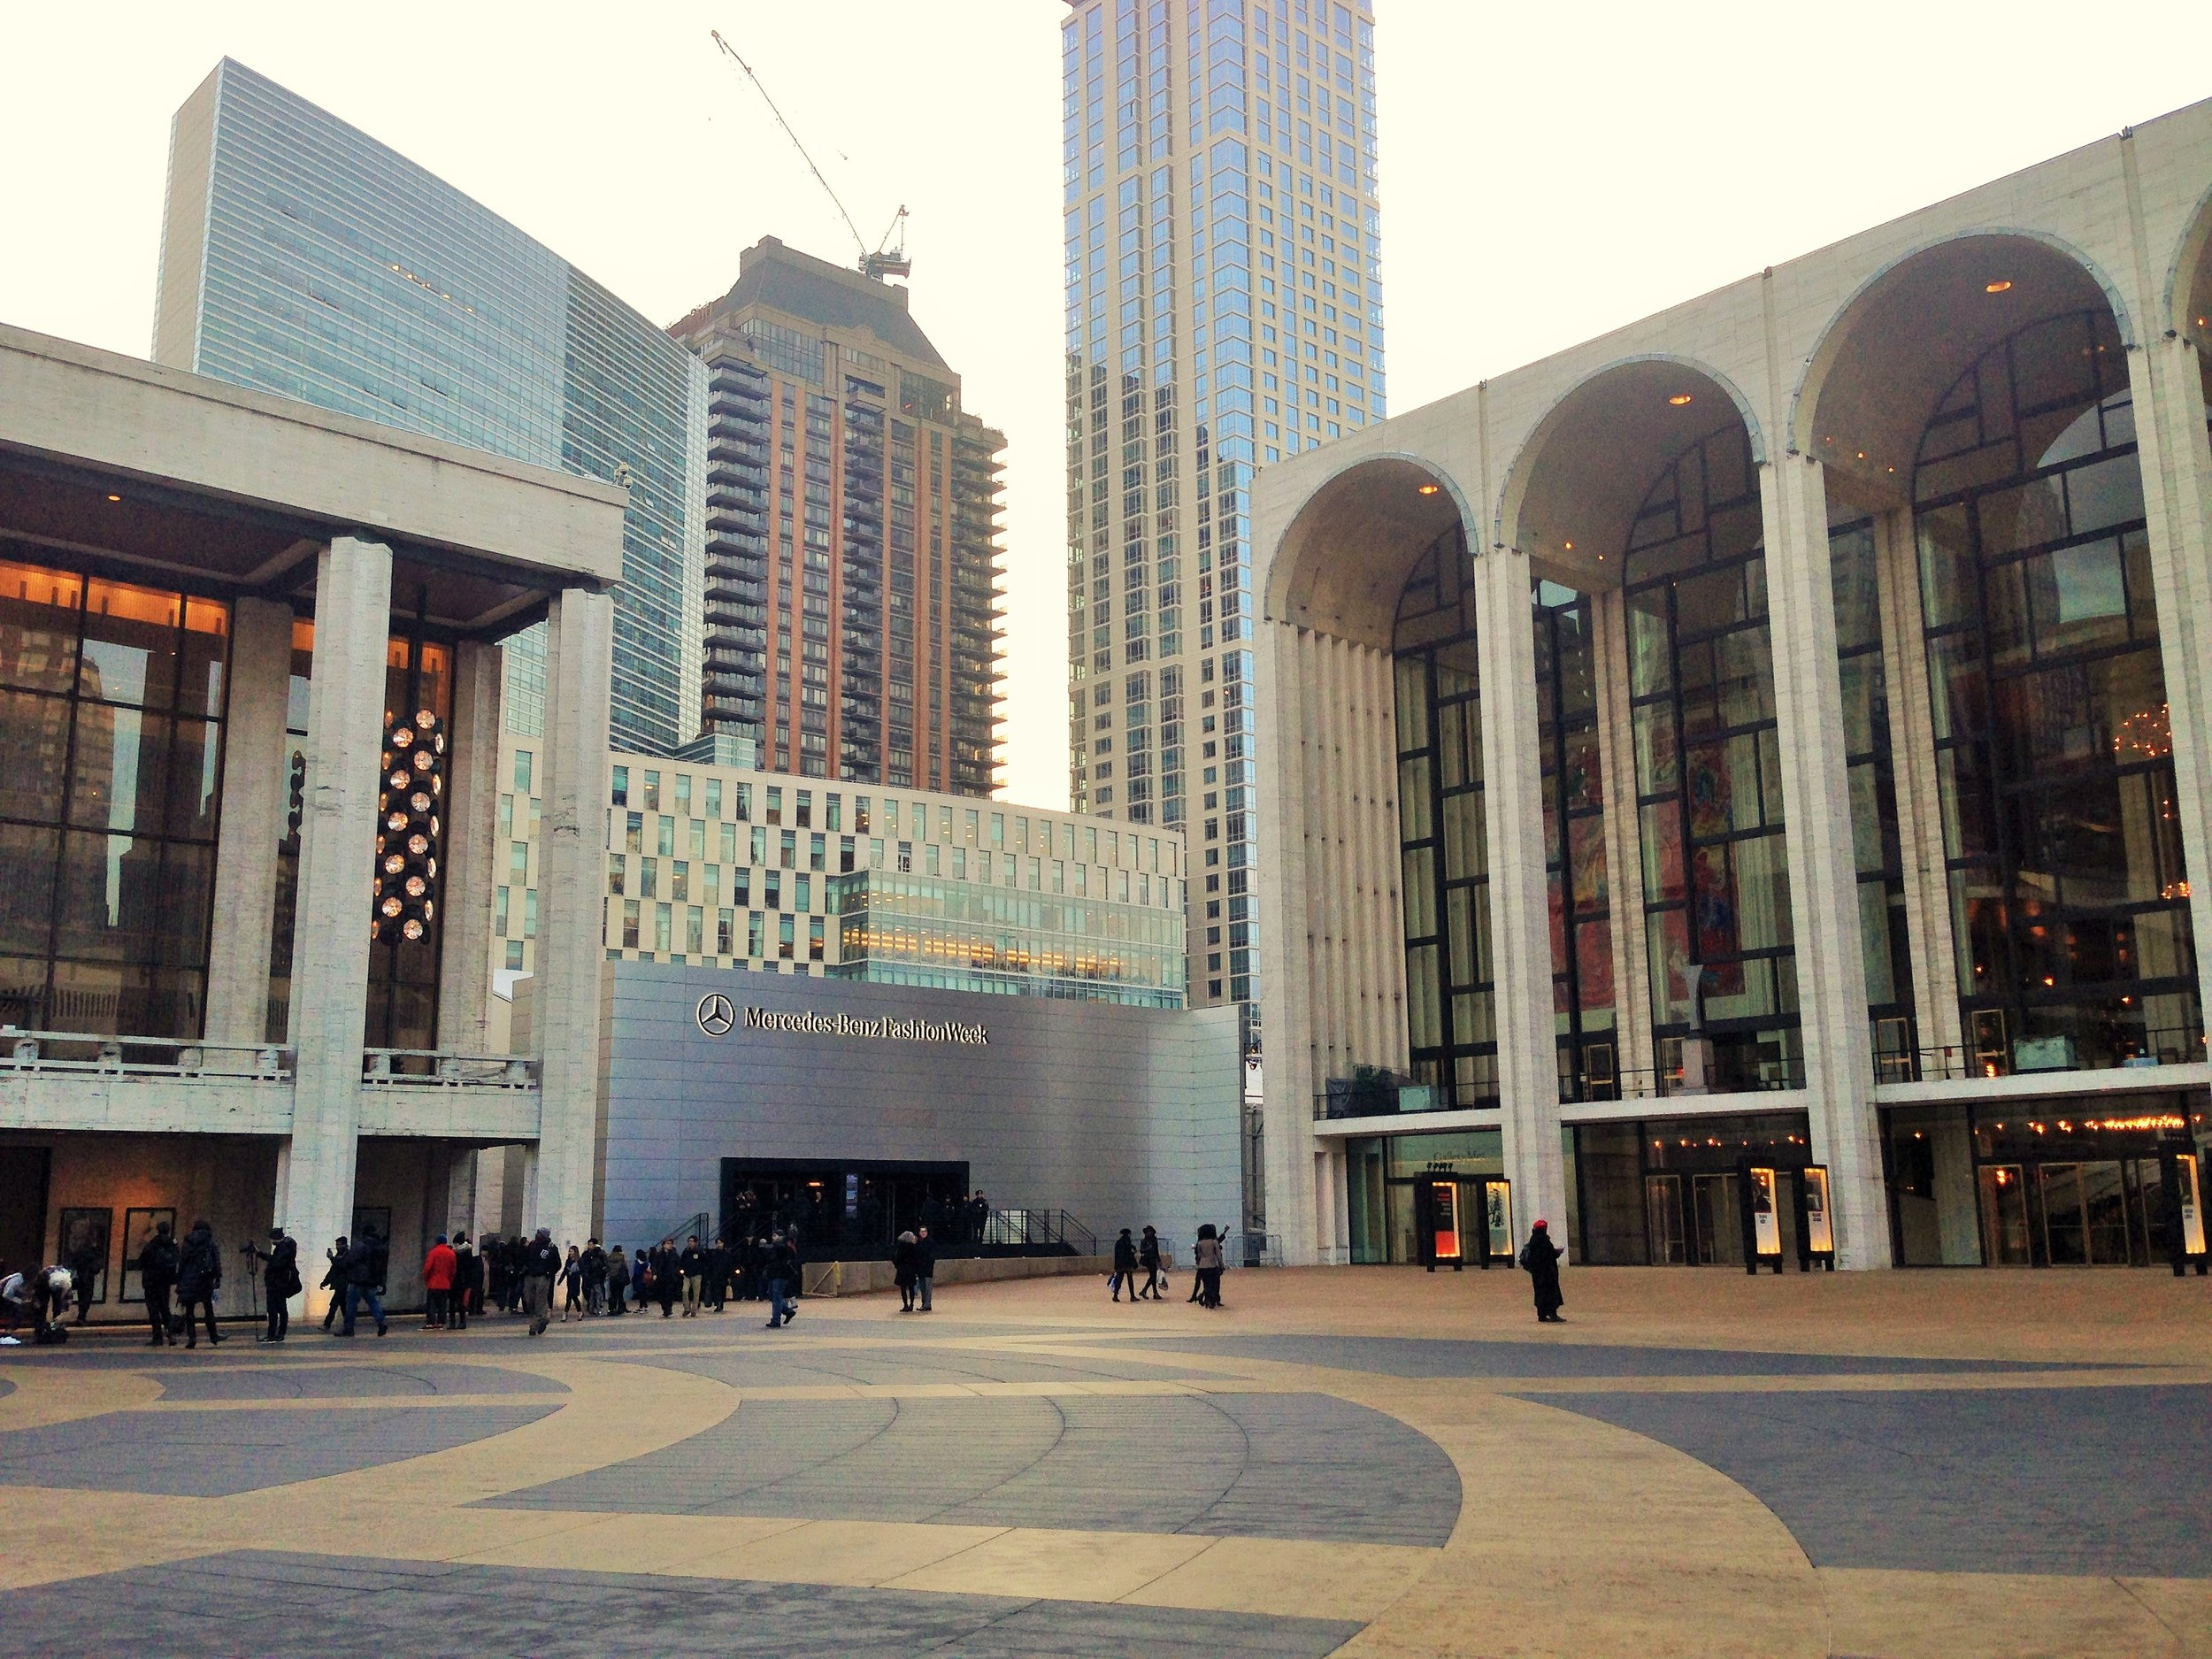 New York Fashion Week is currently held at Lincoln Center. Photo by Meagan O'Shaughnessy.